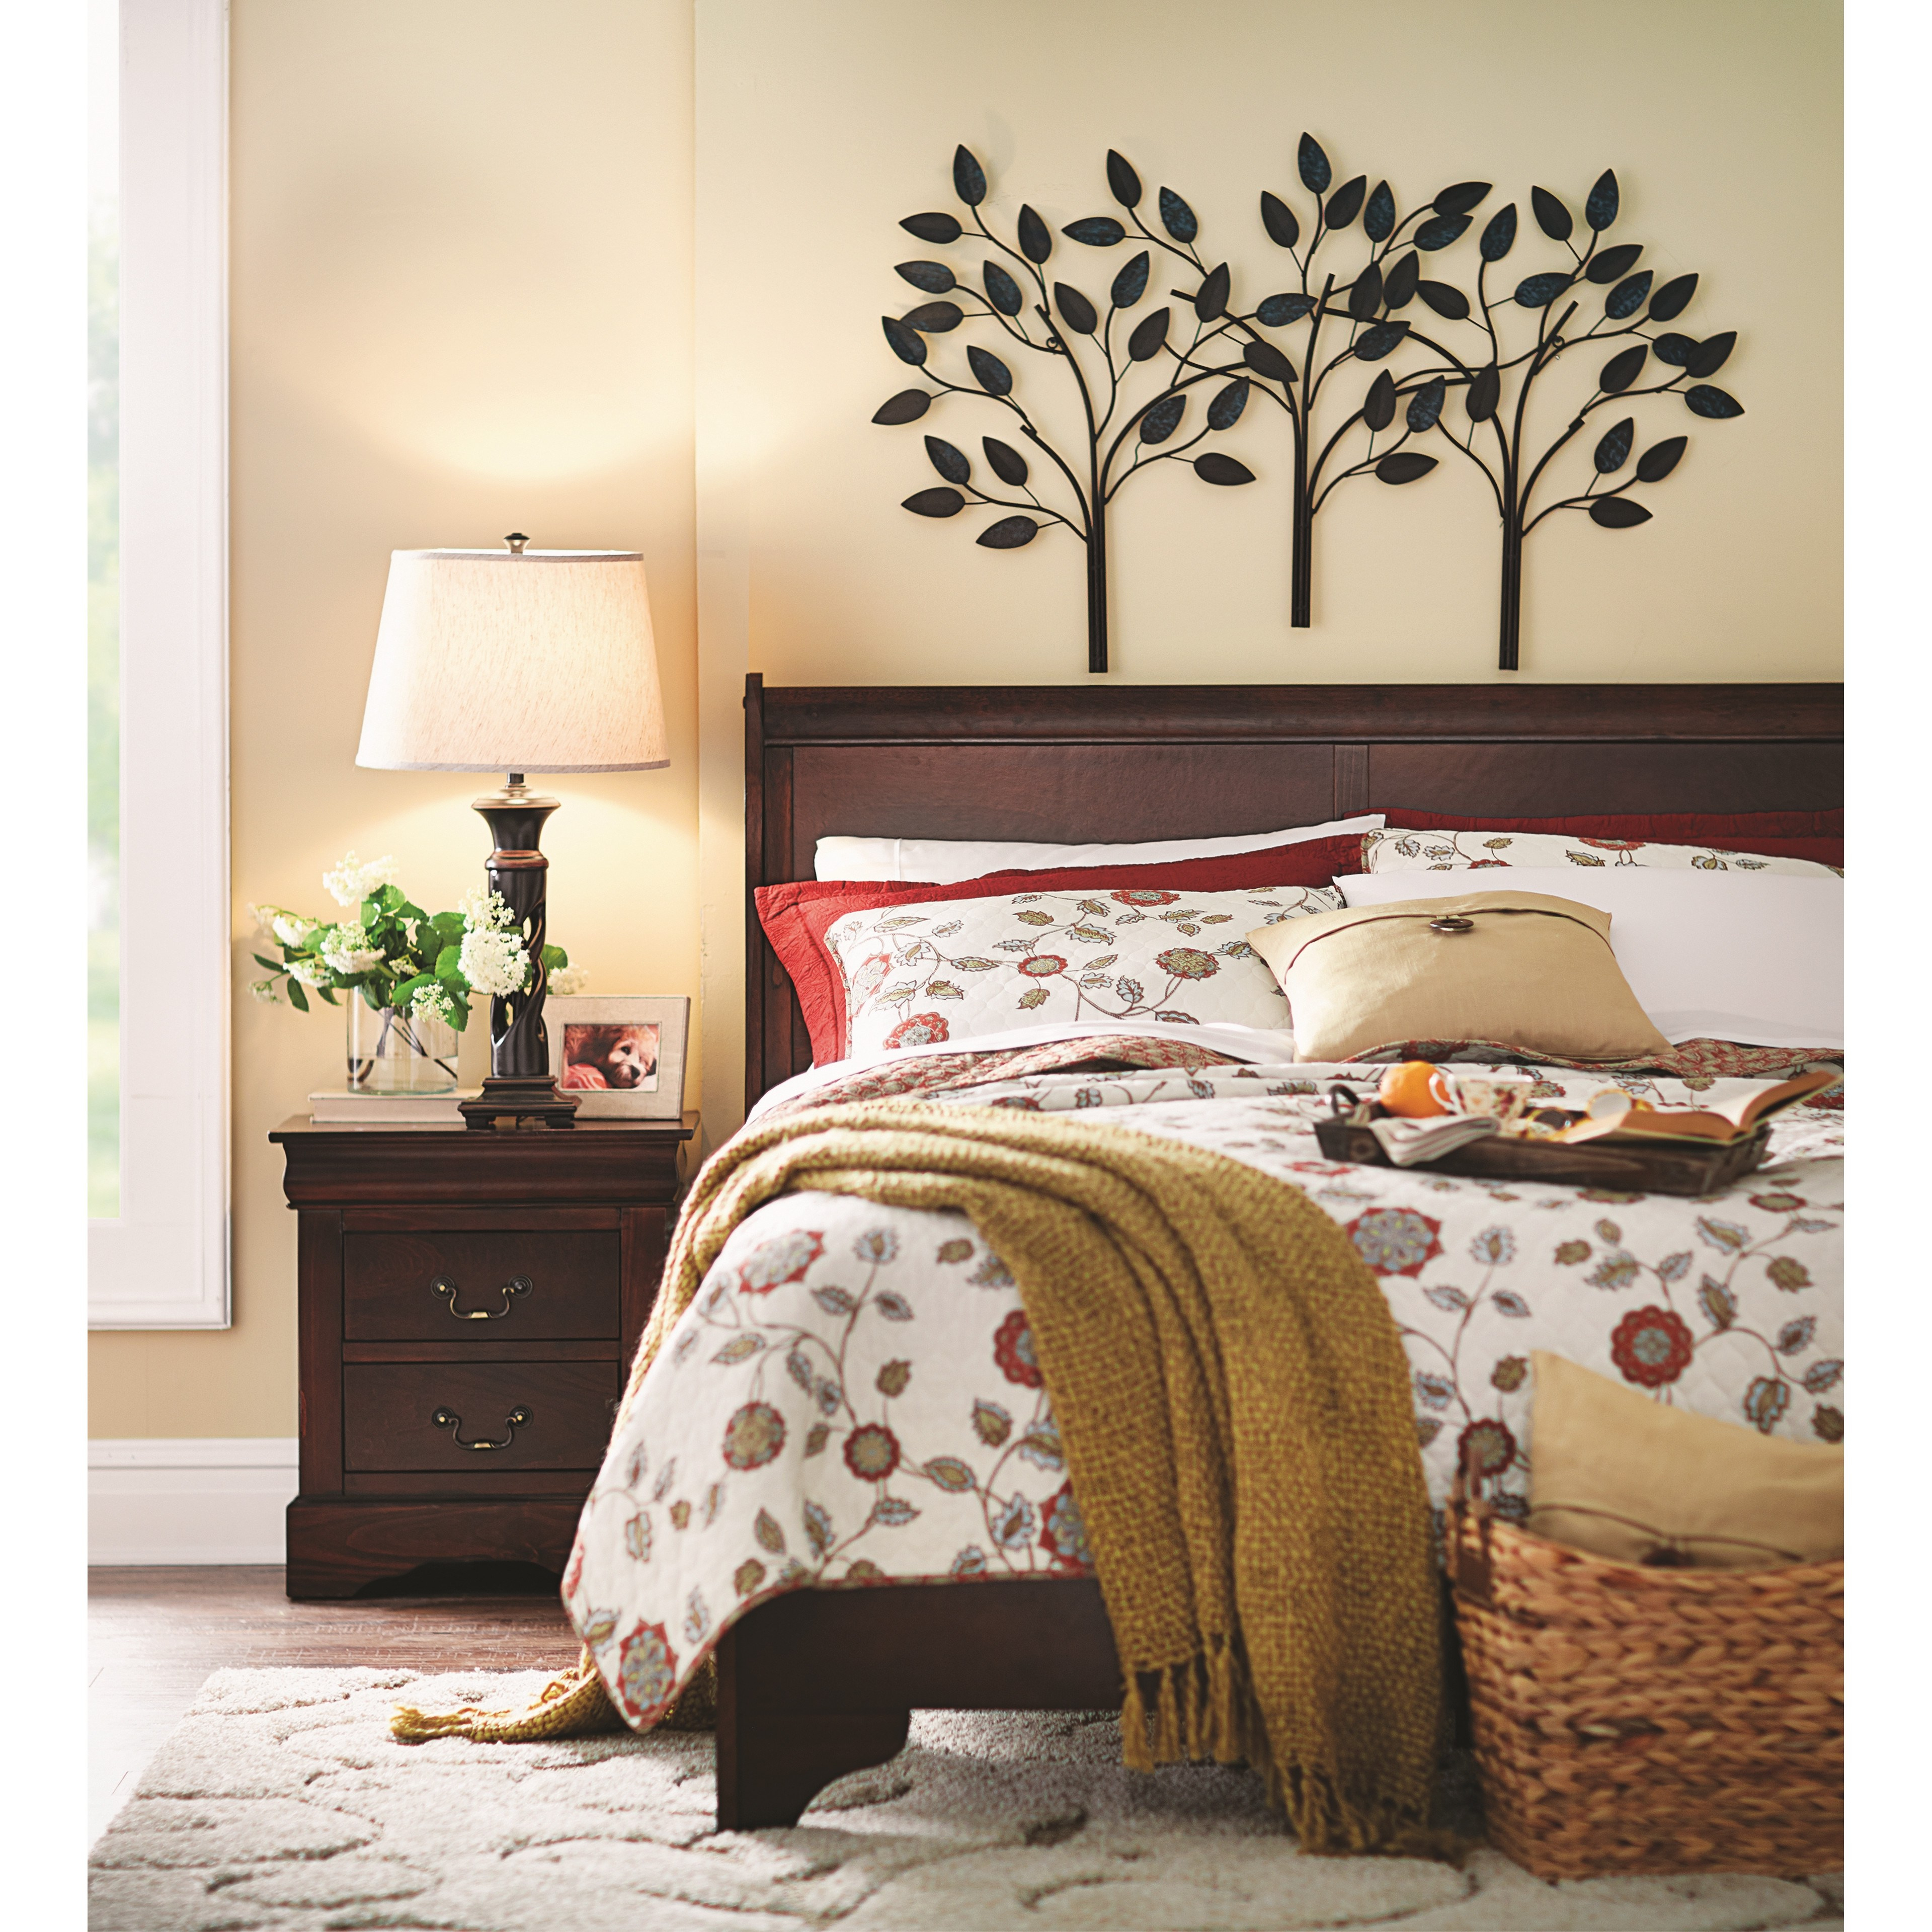 Leaves Wall Decor – Ronniebrownlifesystems Throughout Desford Leaf Wall Decor (View 5 of 30)